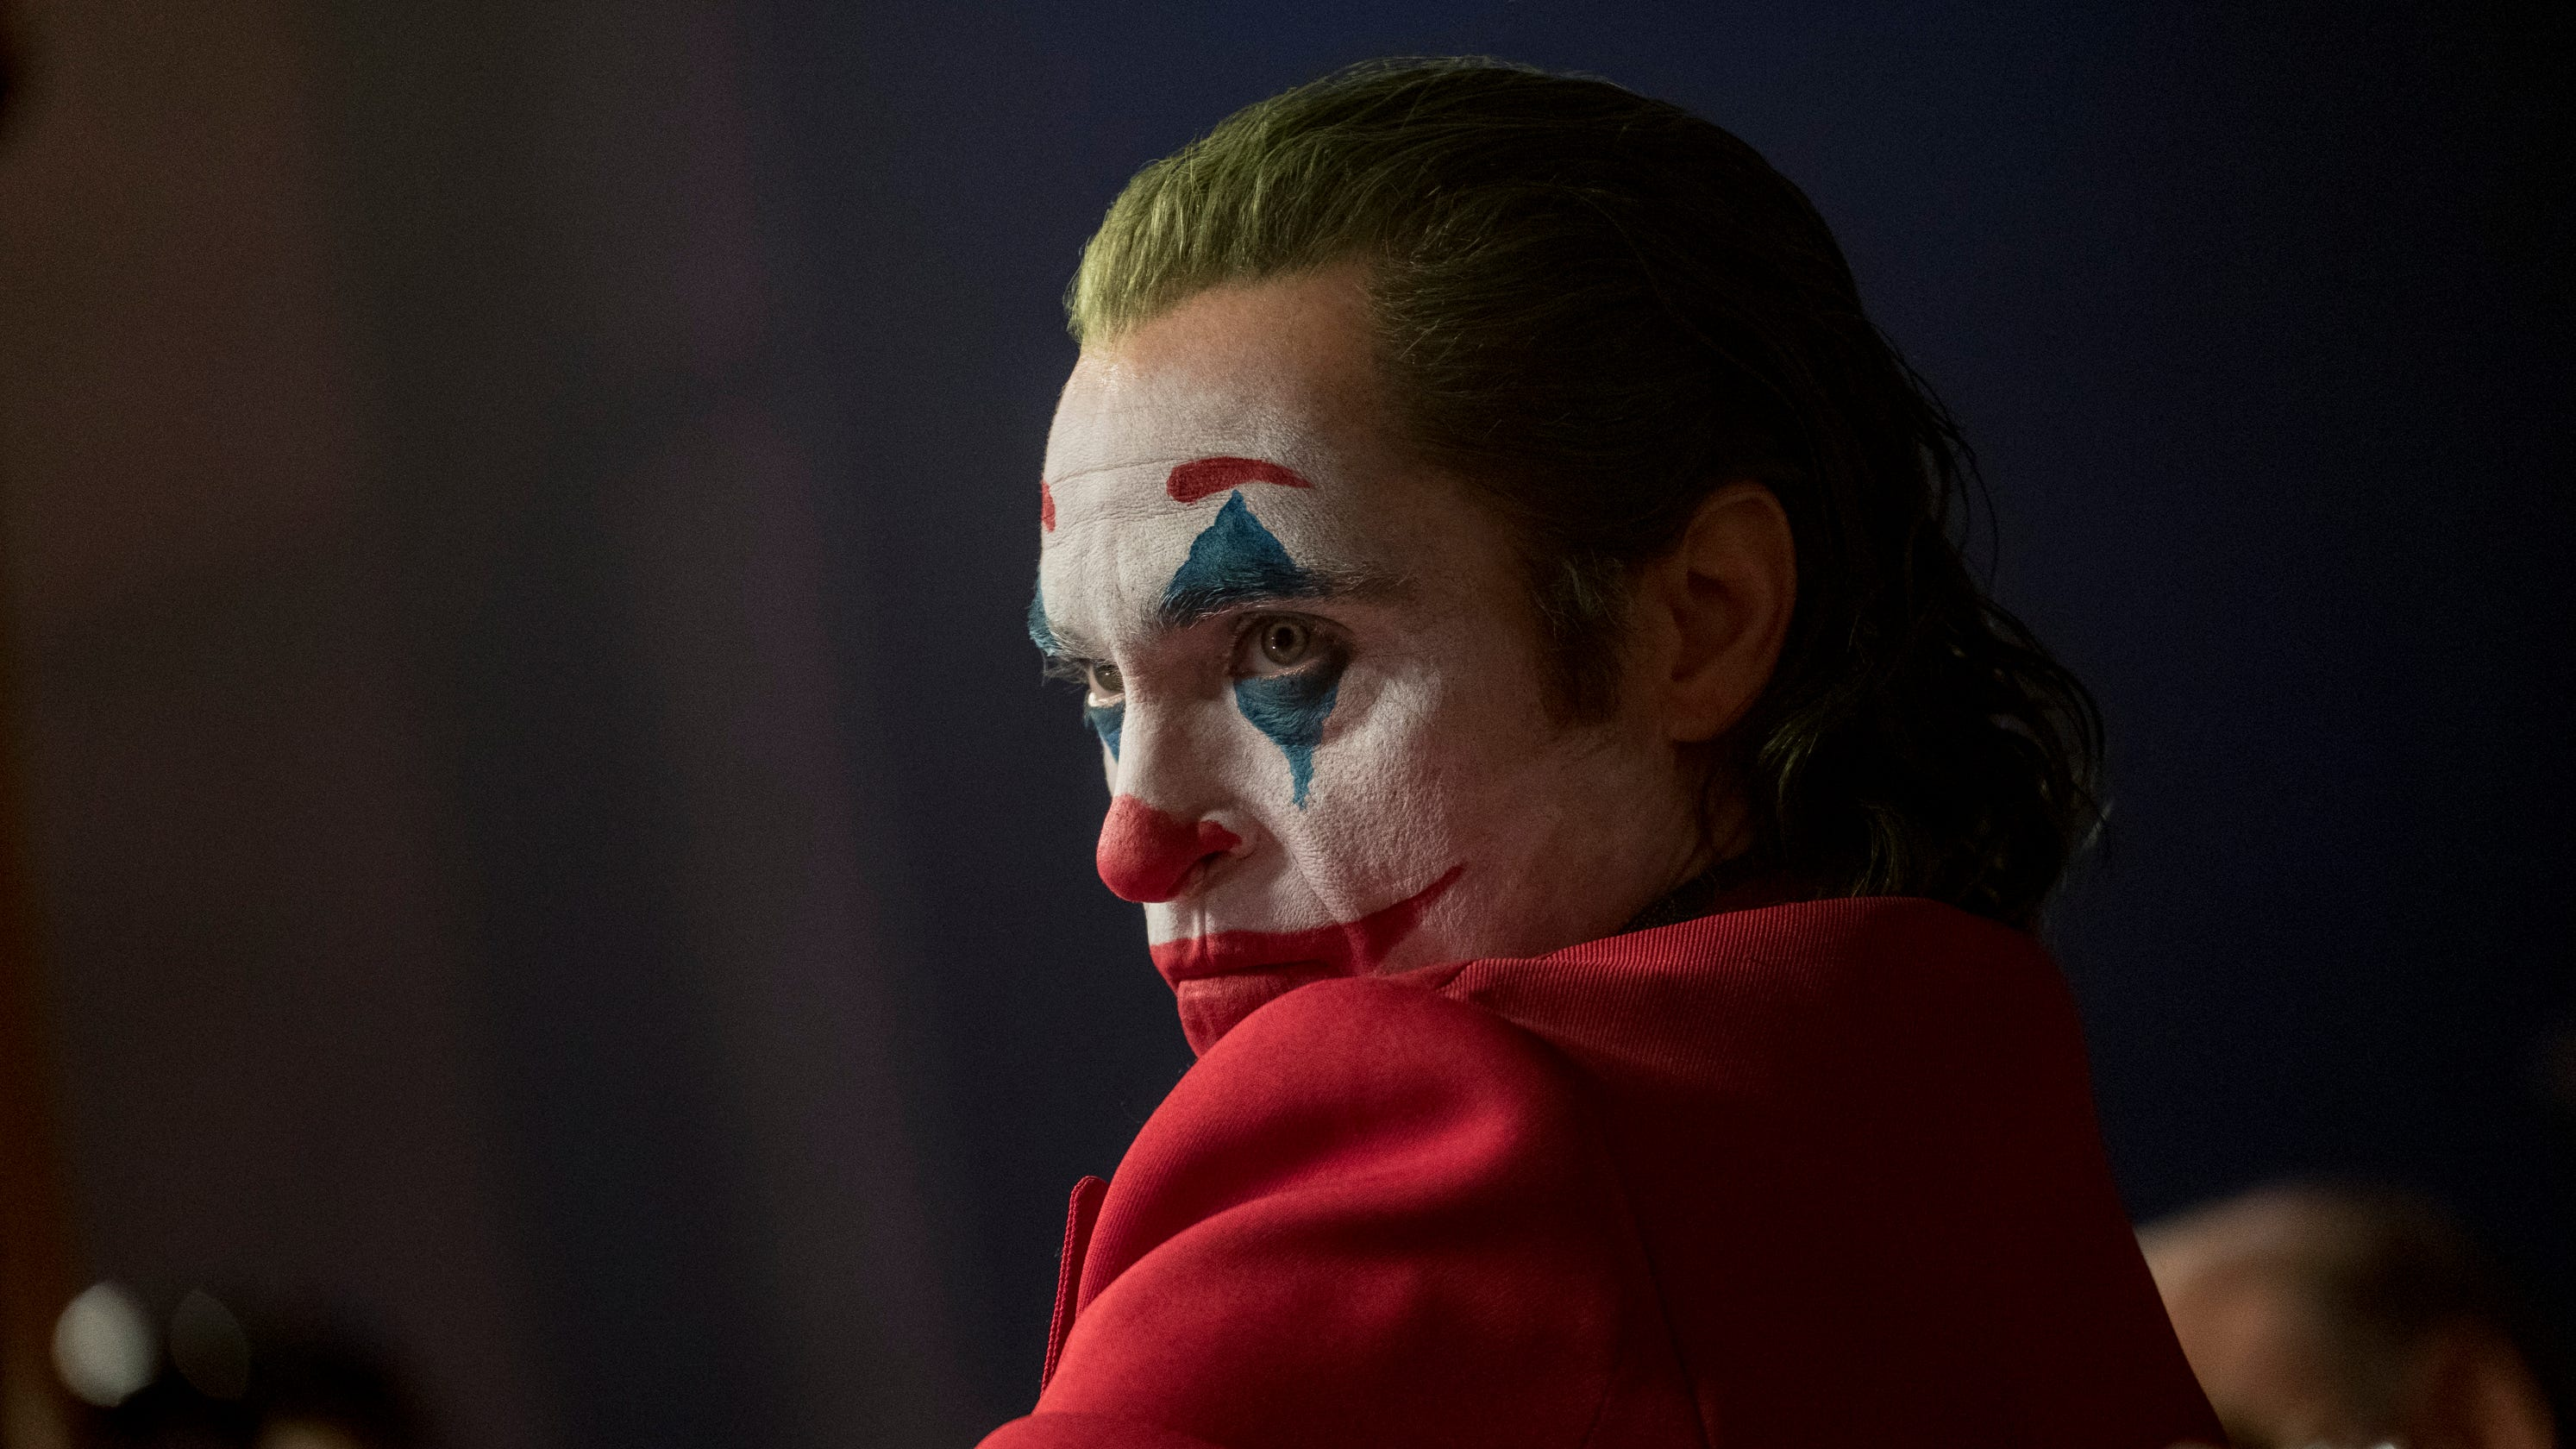 Joker Executive Producer Movies Can Shake People Up